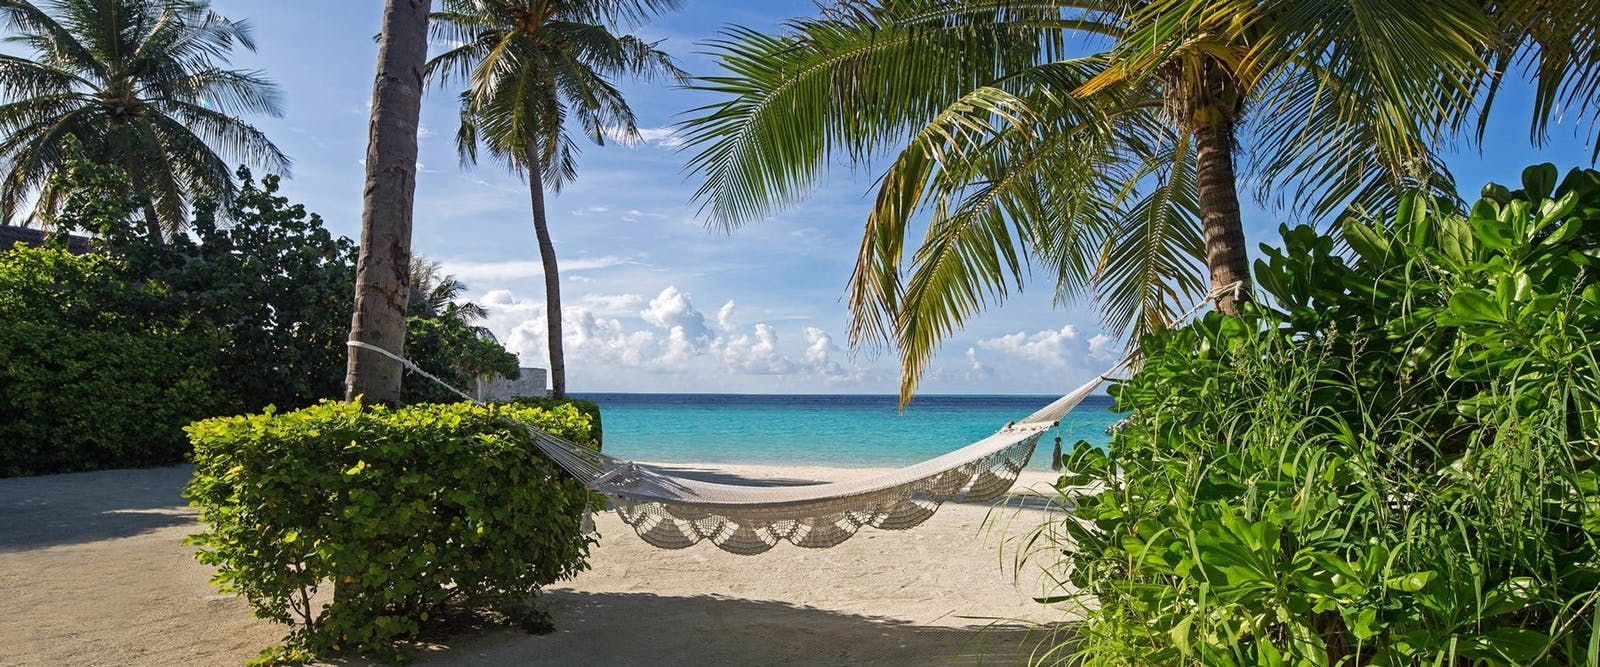 Beach Hammock at Jumeirah Vittaveli, Maldives